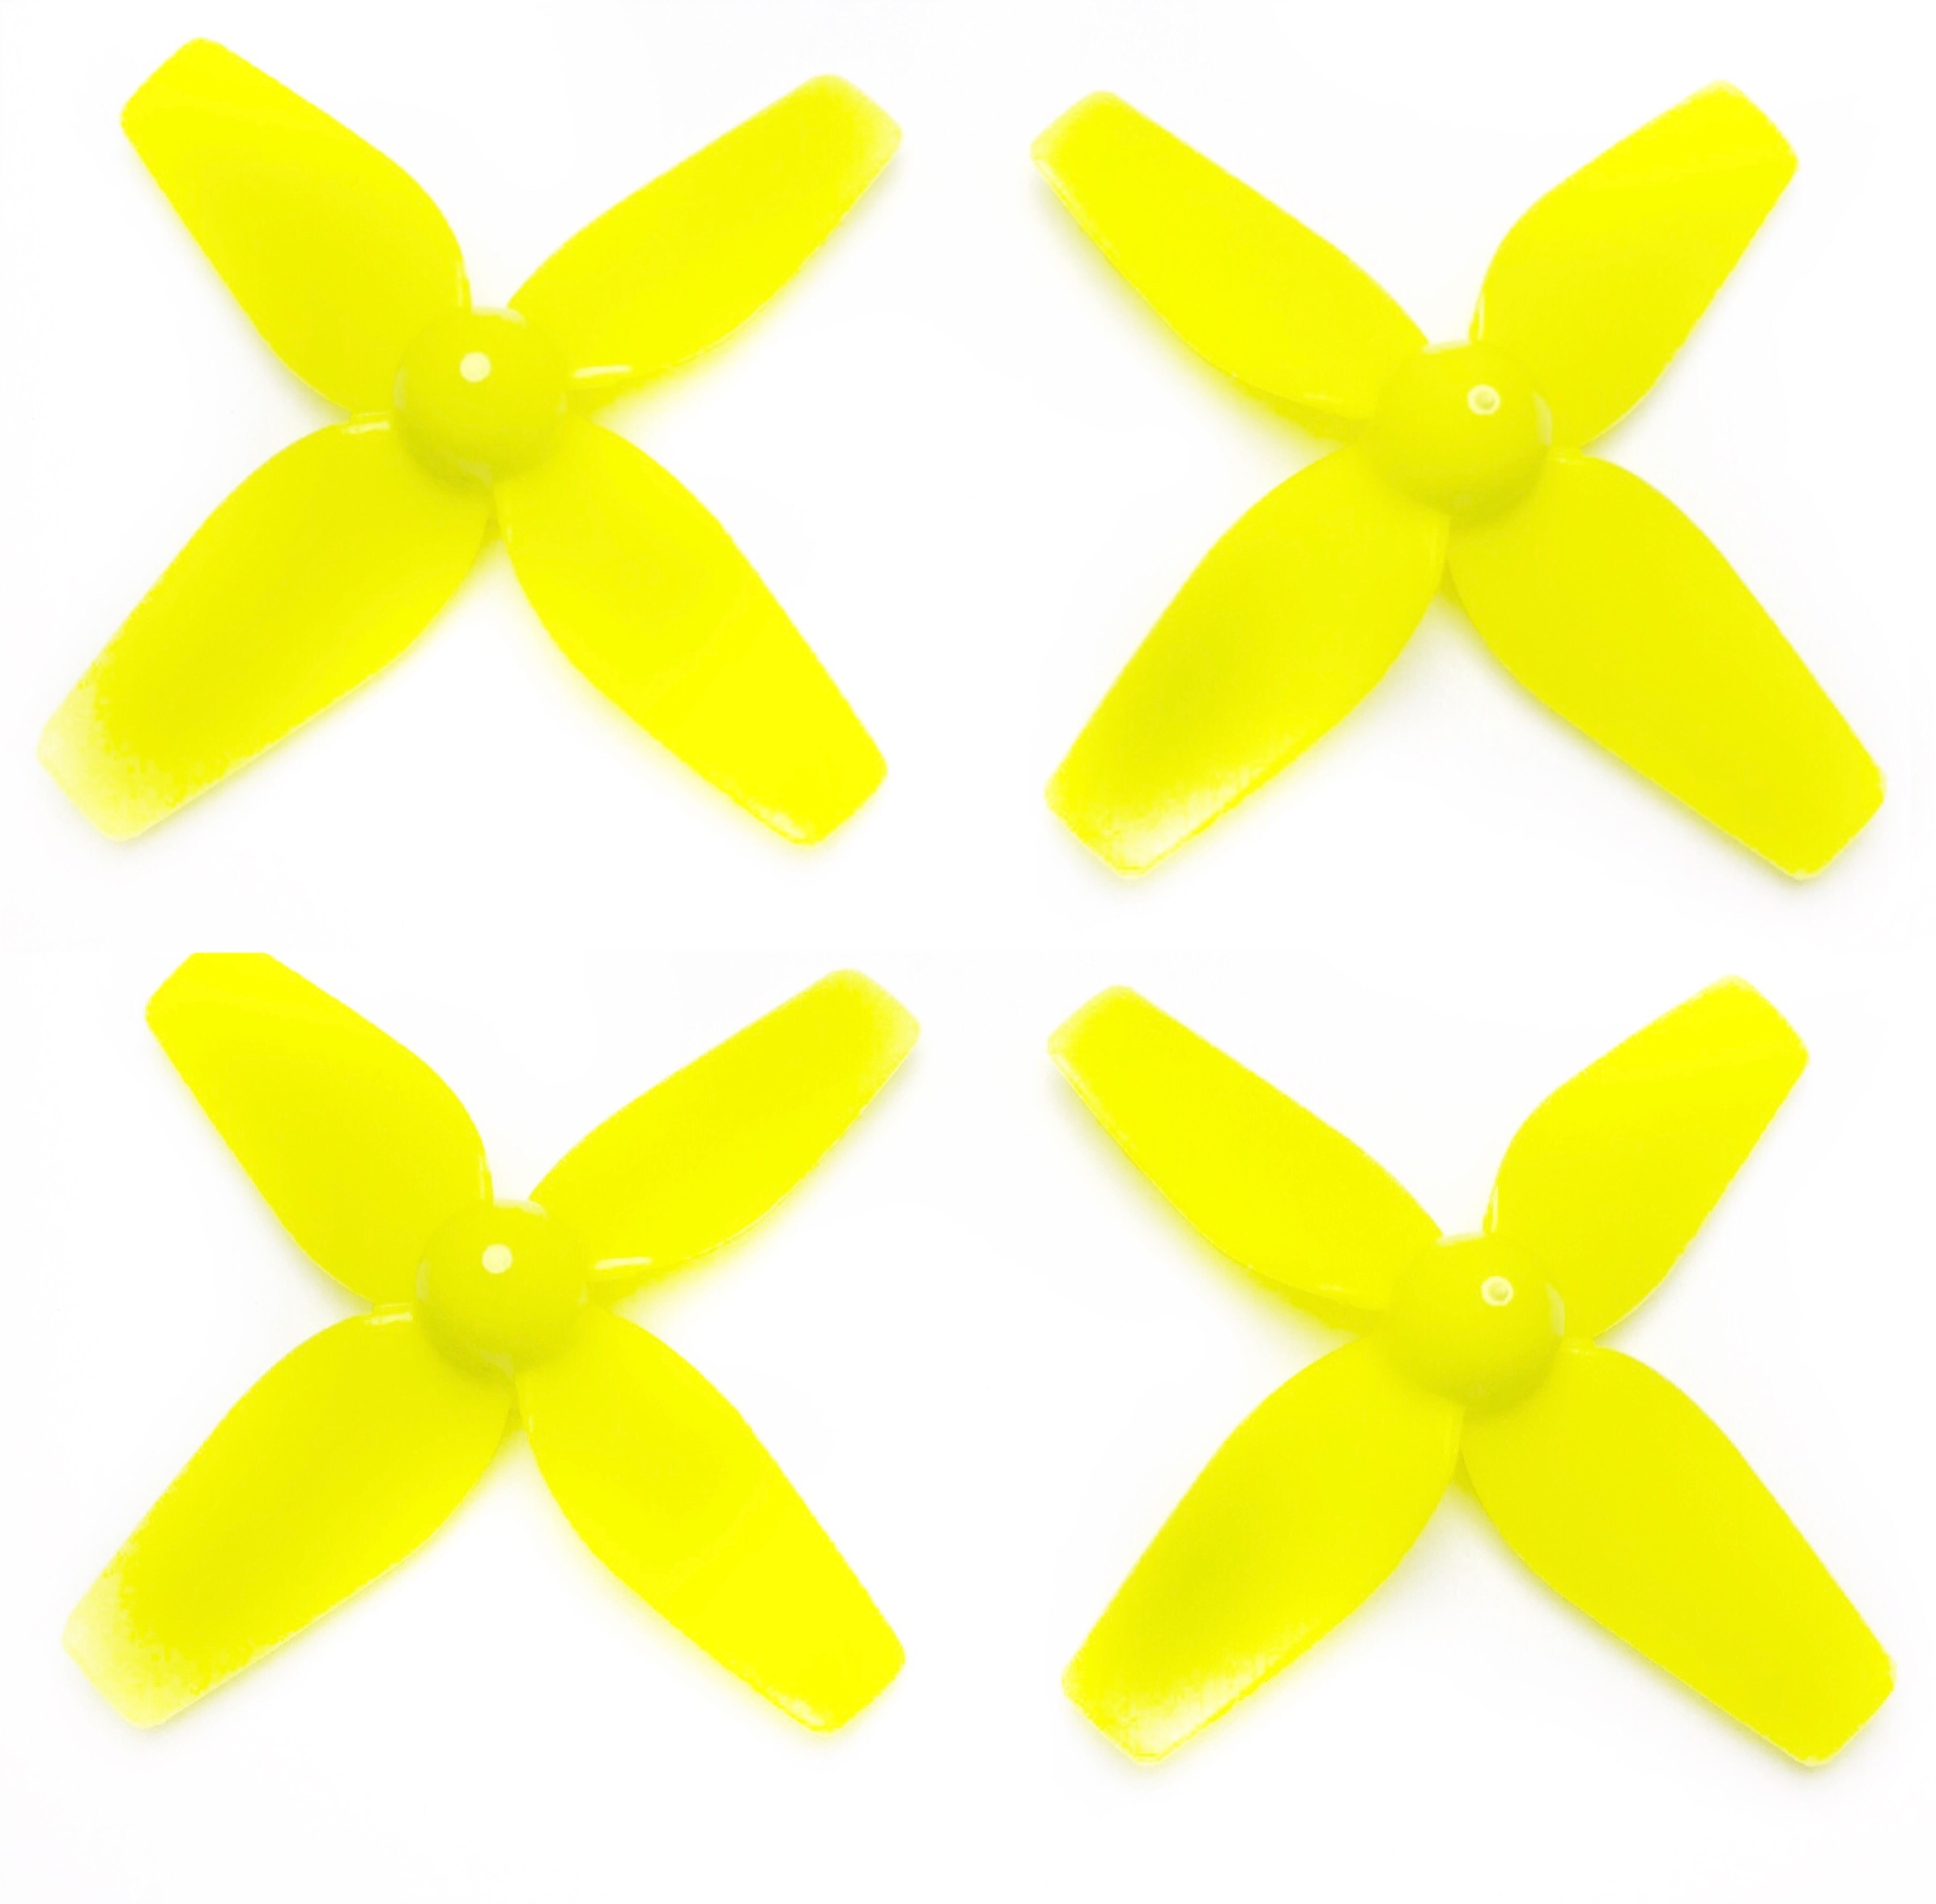 Eachine 41mm 4 Blades Propeller (2CW, 2CCW) Yellow